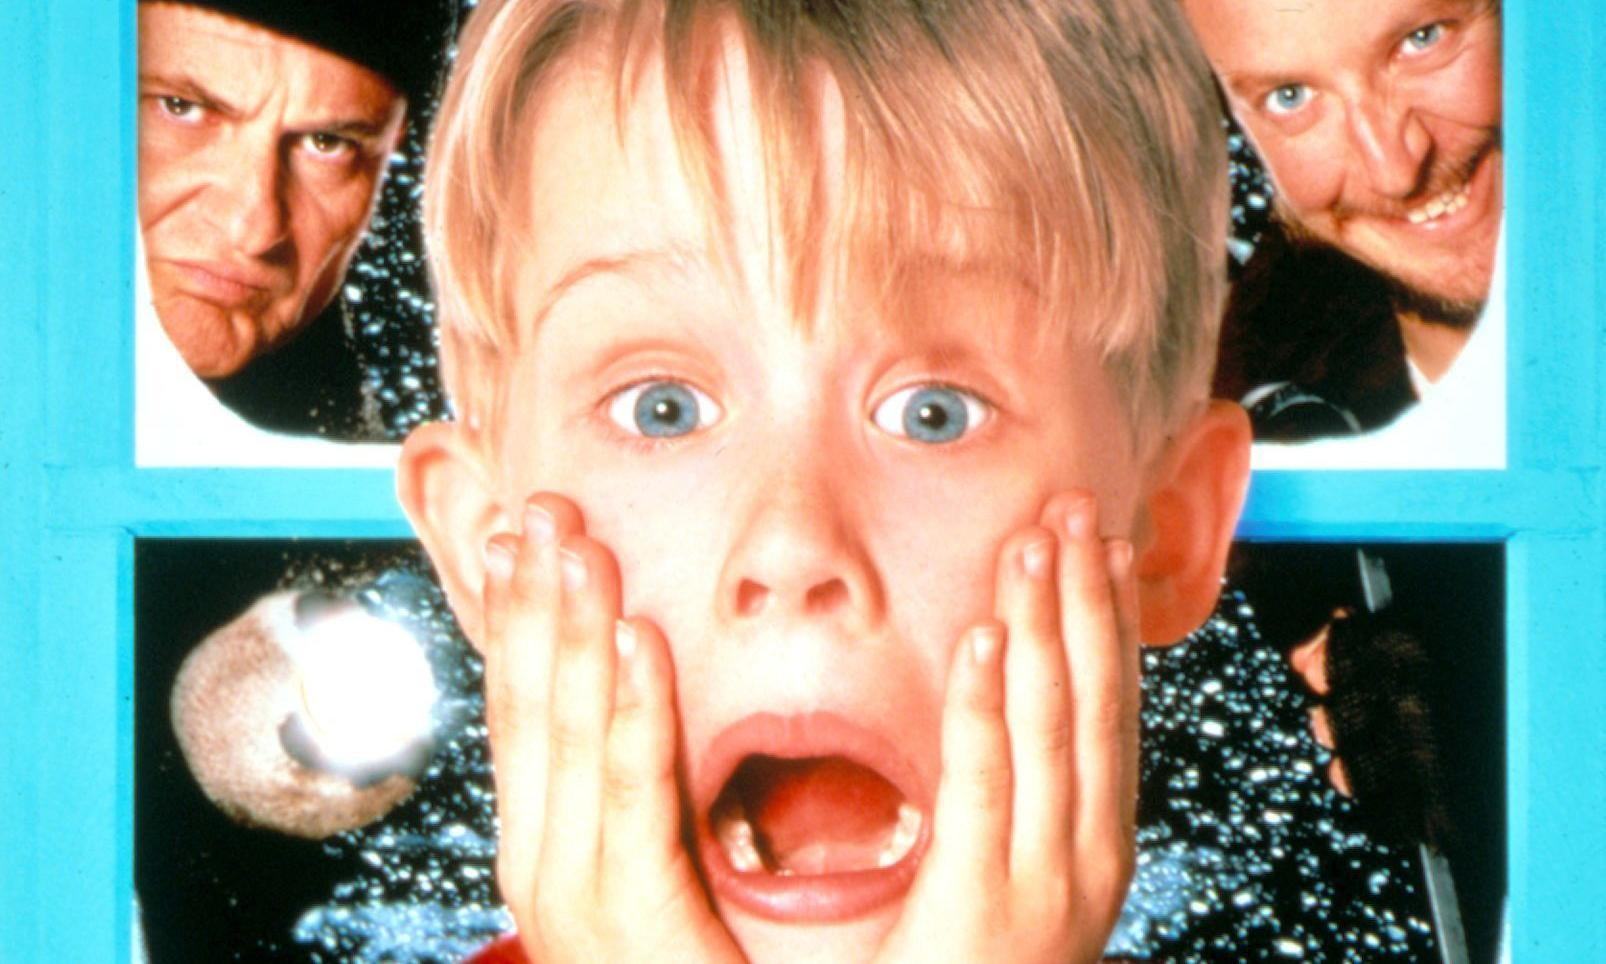 Macaulay Culkin reprises his Home Alone role as a deranged adult